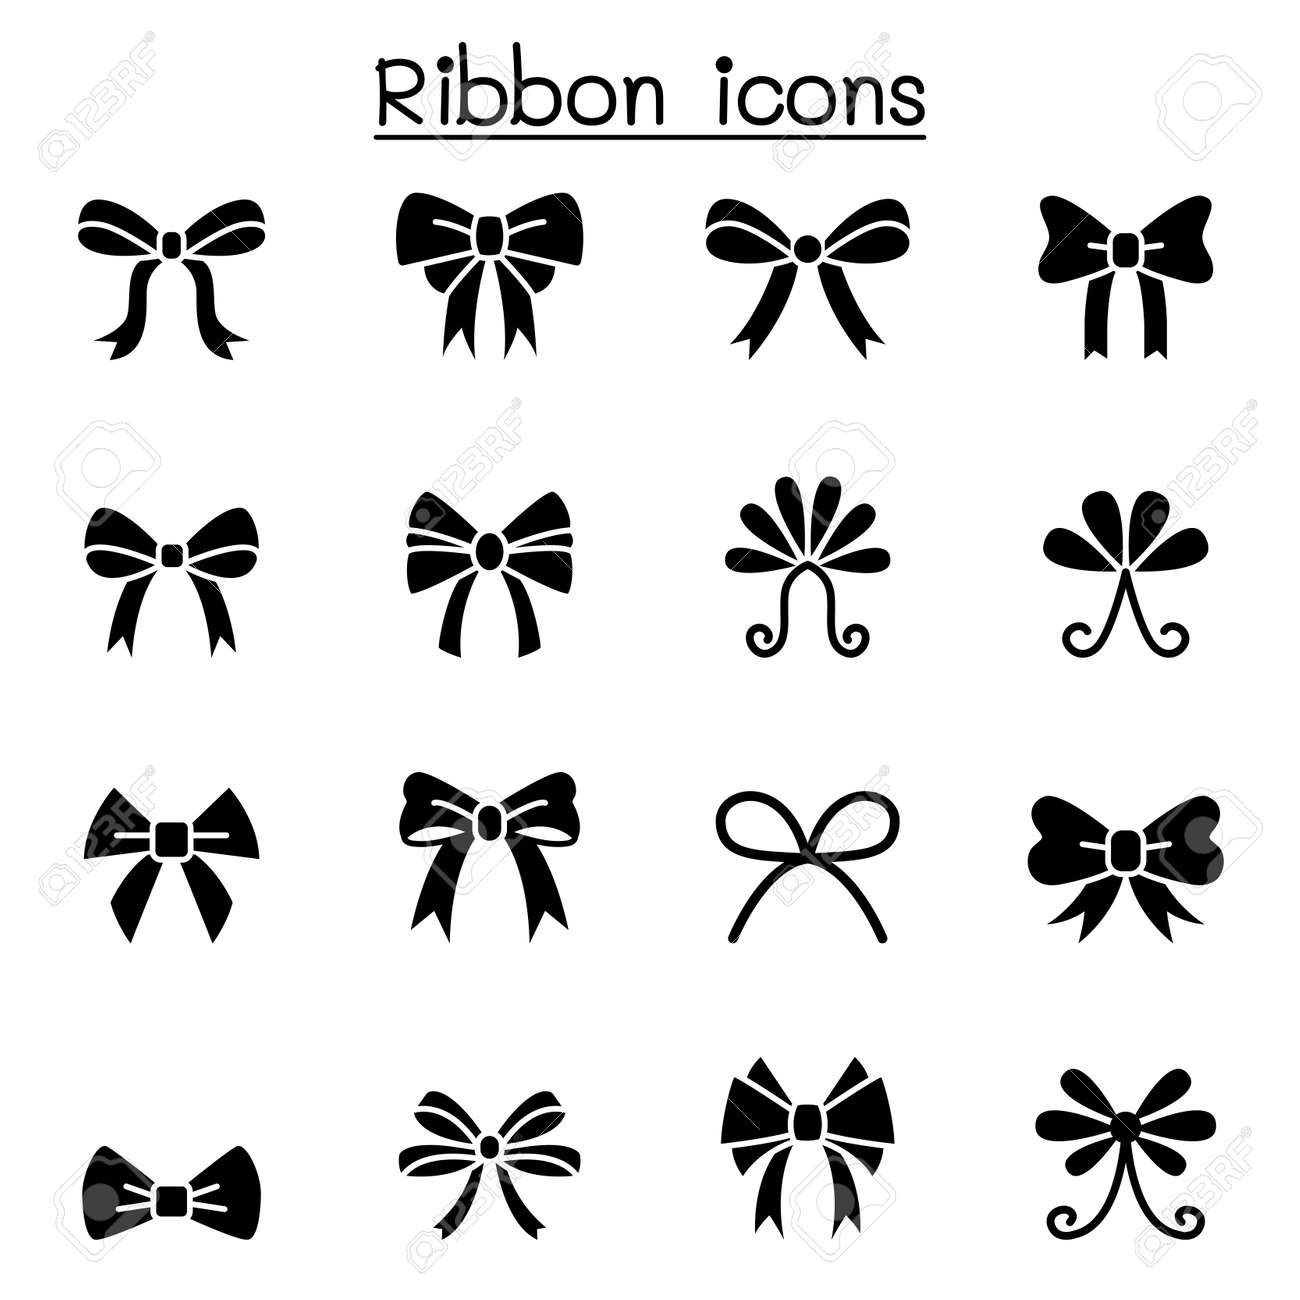 Ribbon Bow Tie Icon Set Vector Illustration Graphic Design Royalty Free Cliparts Vectors And Stock Illustration Image 144386090